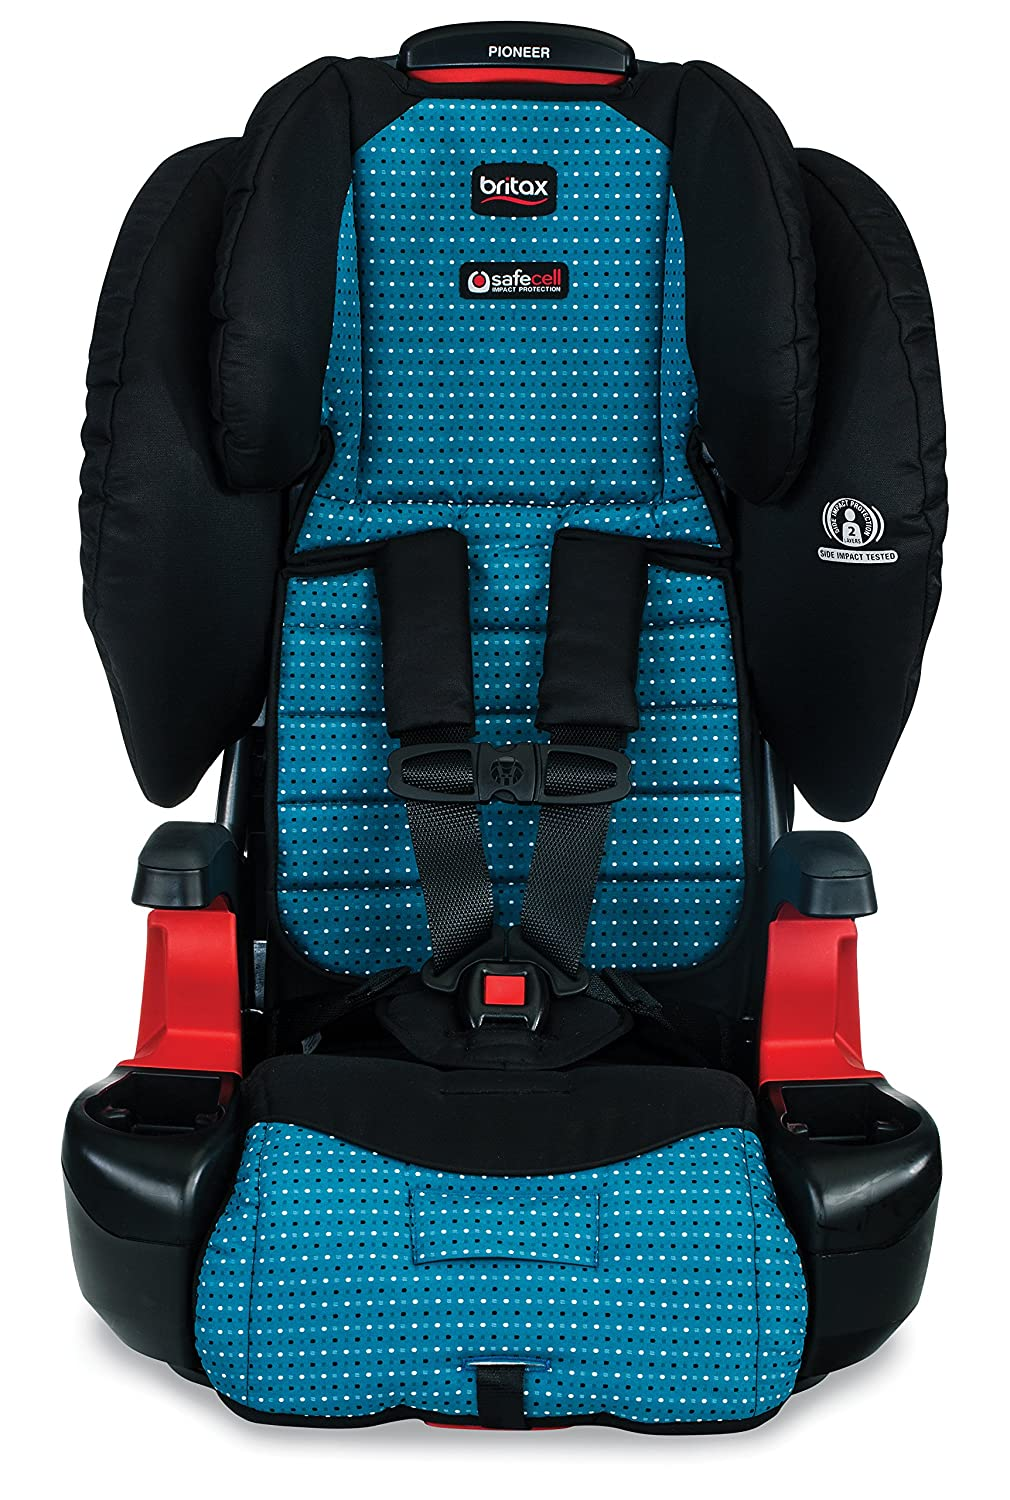 Britax Pioneer G11 Harness To Booster Car Seat Oasis E9LZ78E